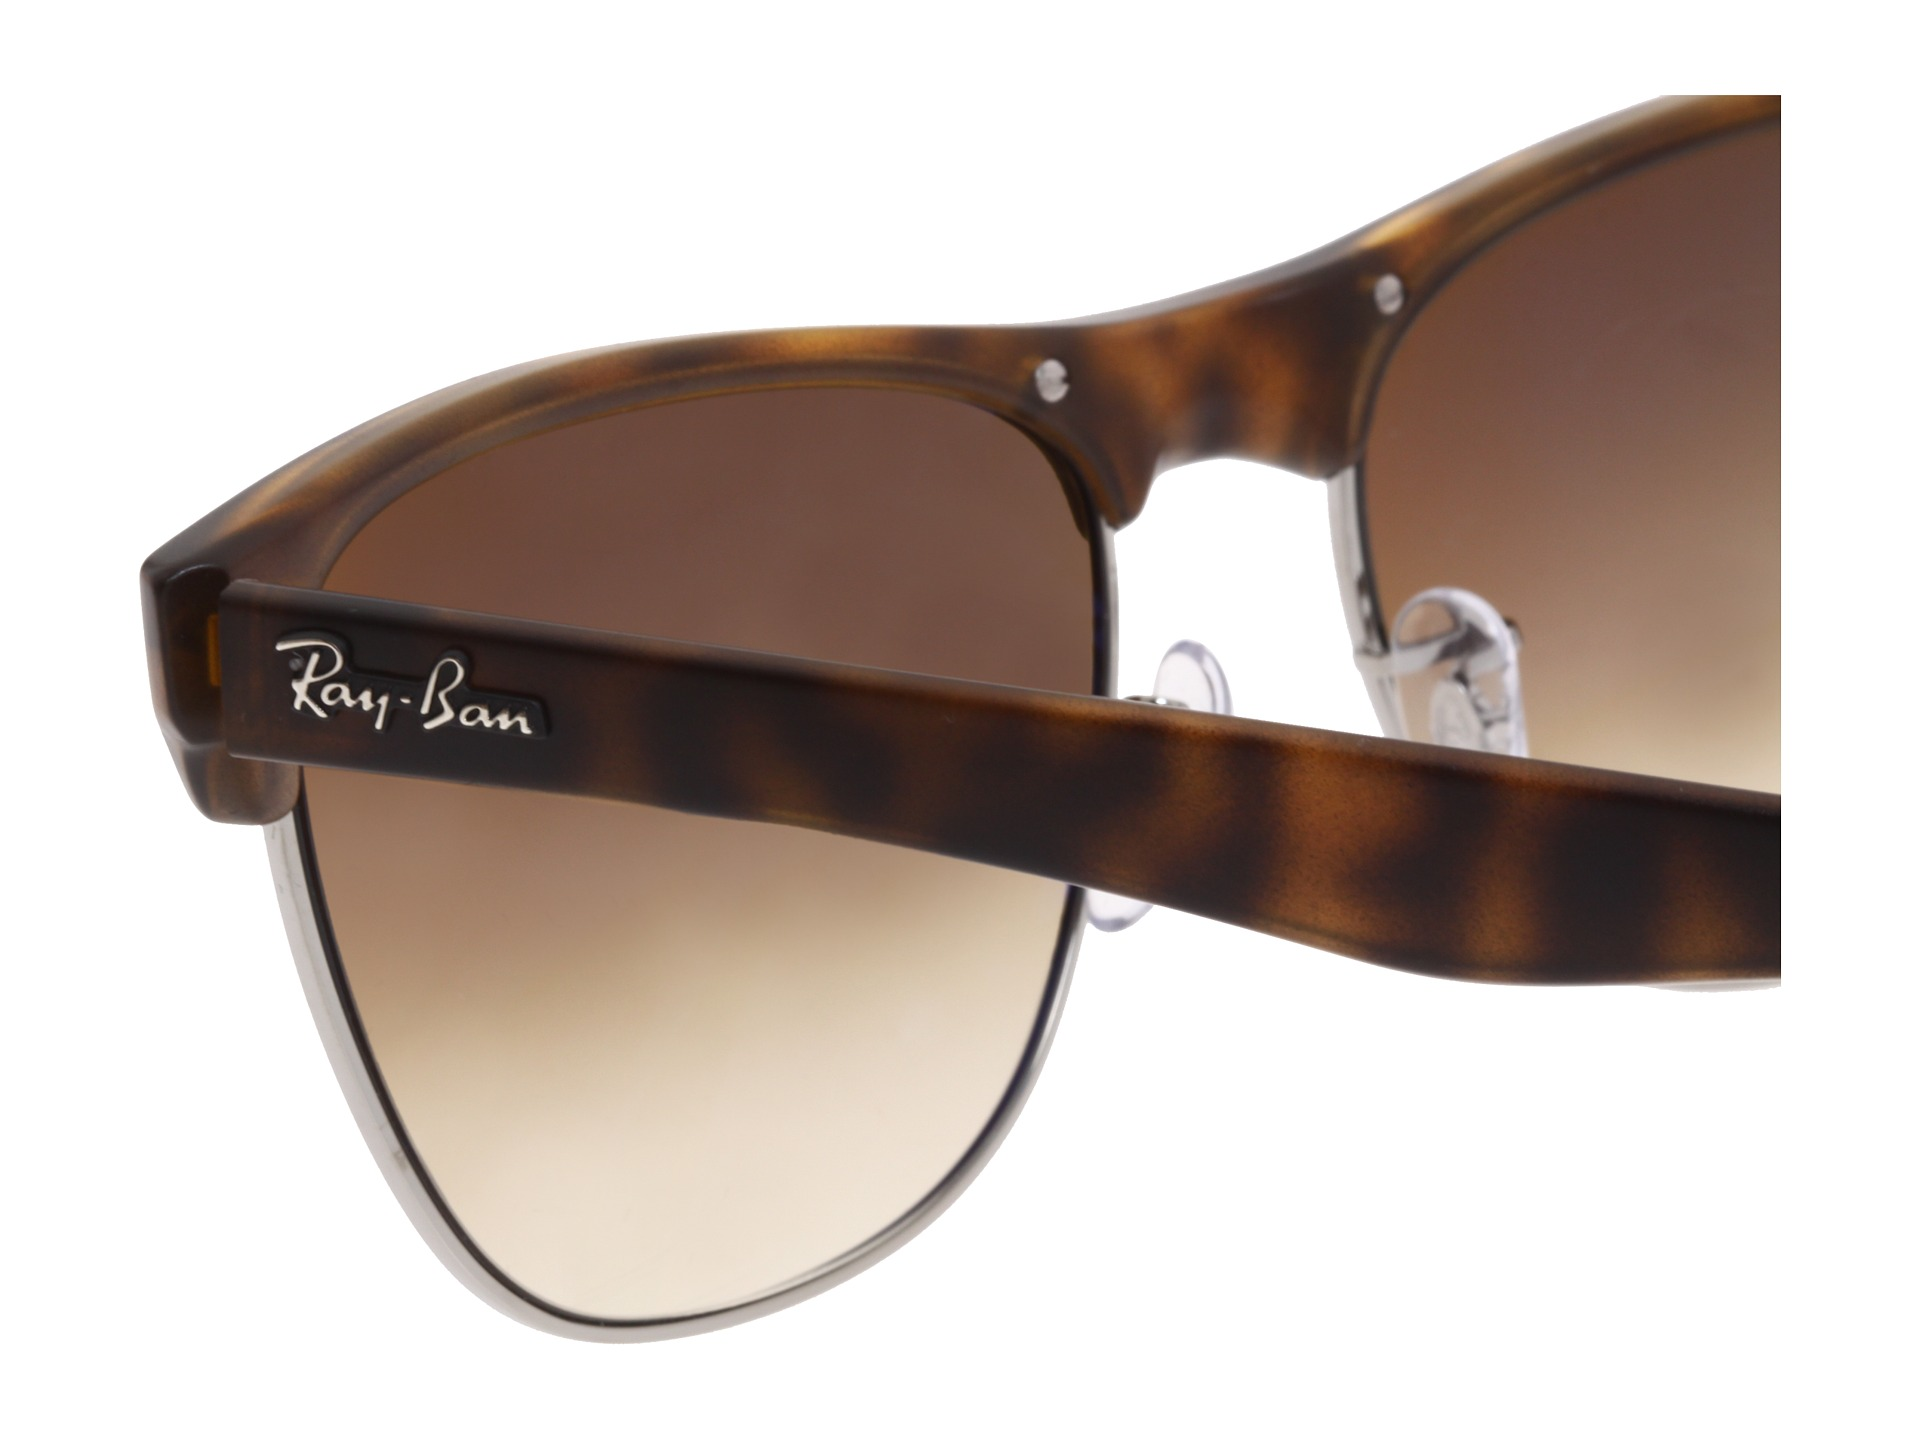 ray ban clubmaster sunglasses oversized  ray ban rb4175 oversized clubmaster 57mm zappos free shipping both ways